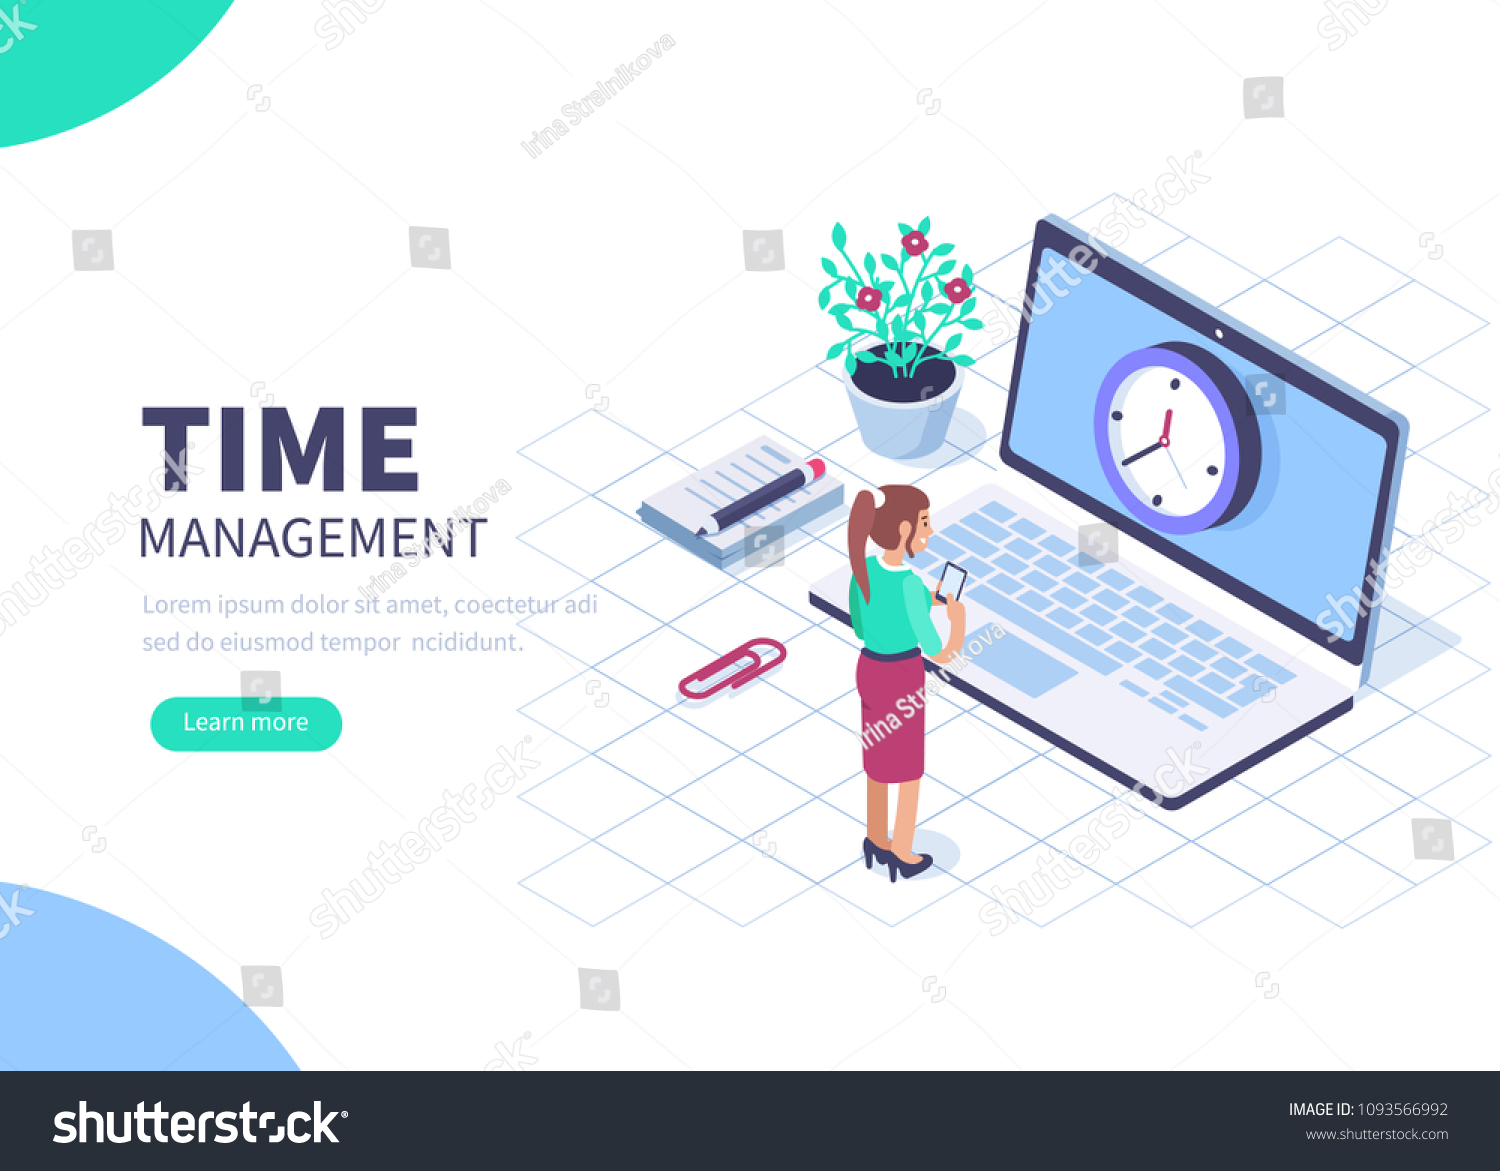 Time Management Banner Character Text Place Stock Vector Royalty Free 1093566992